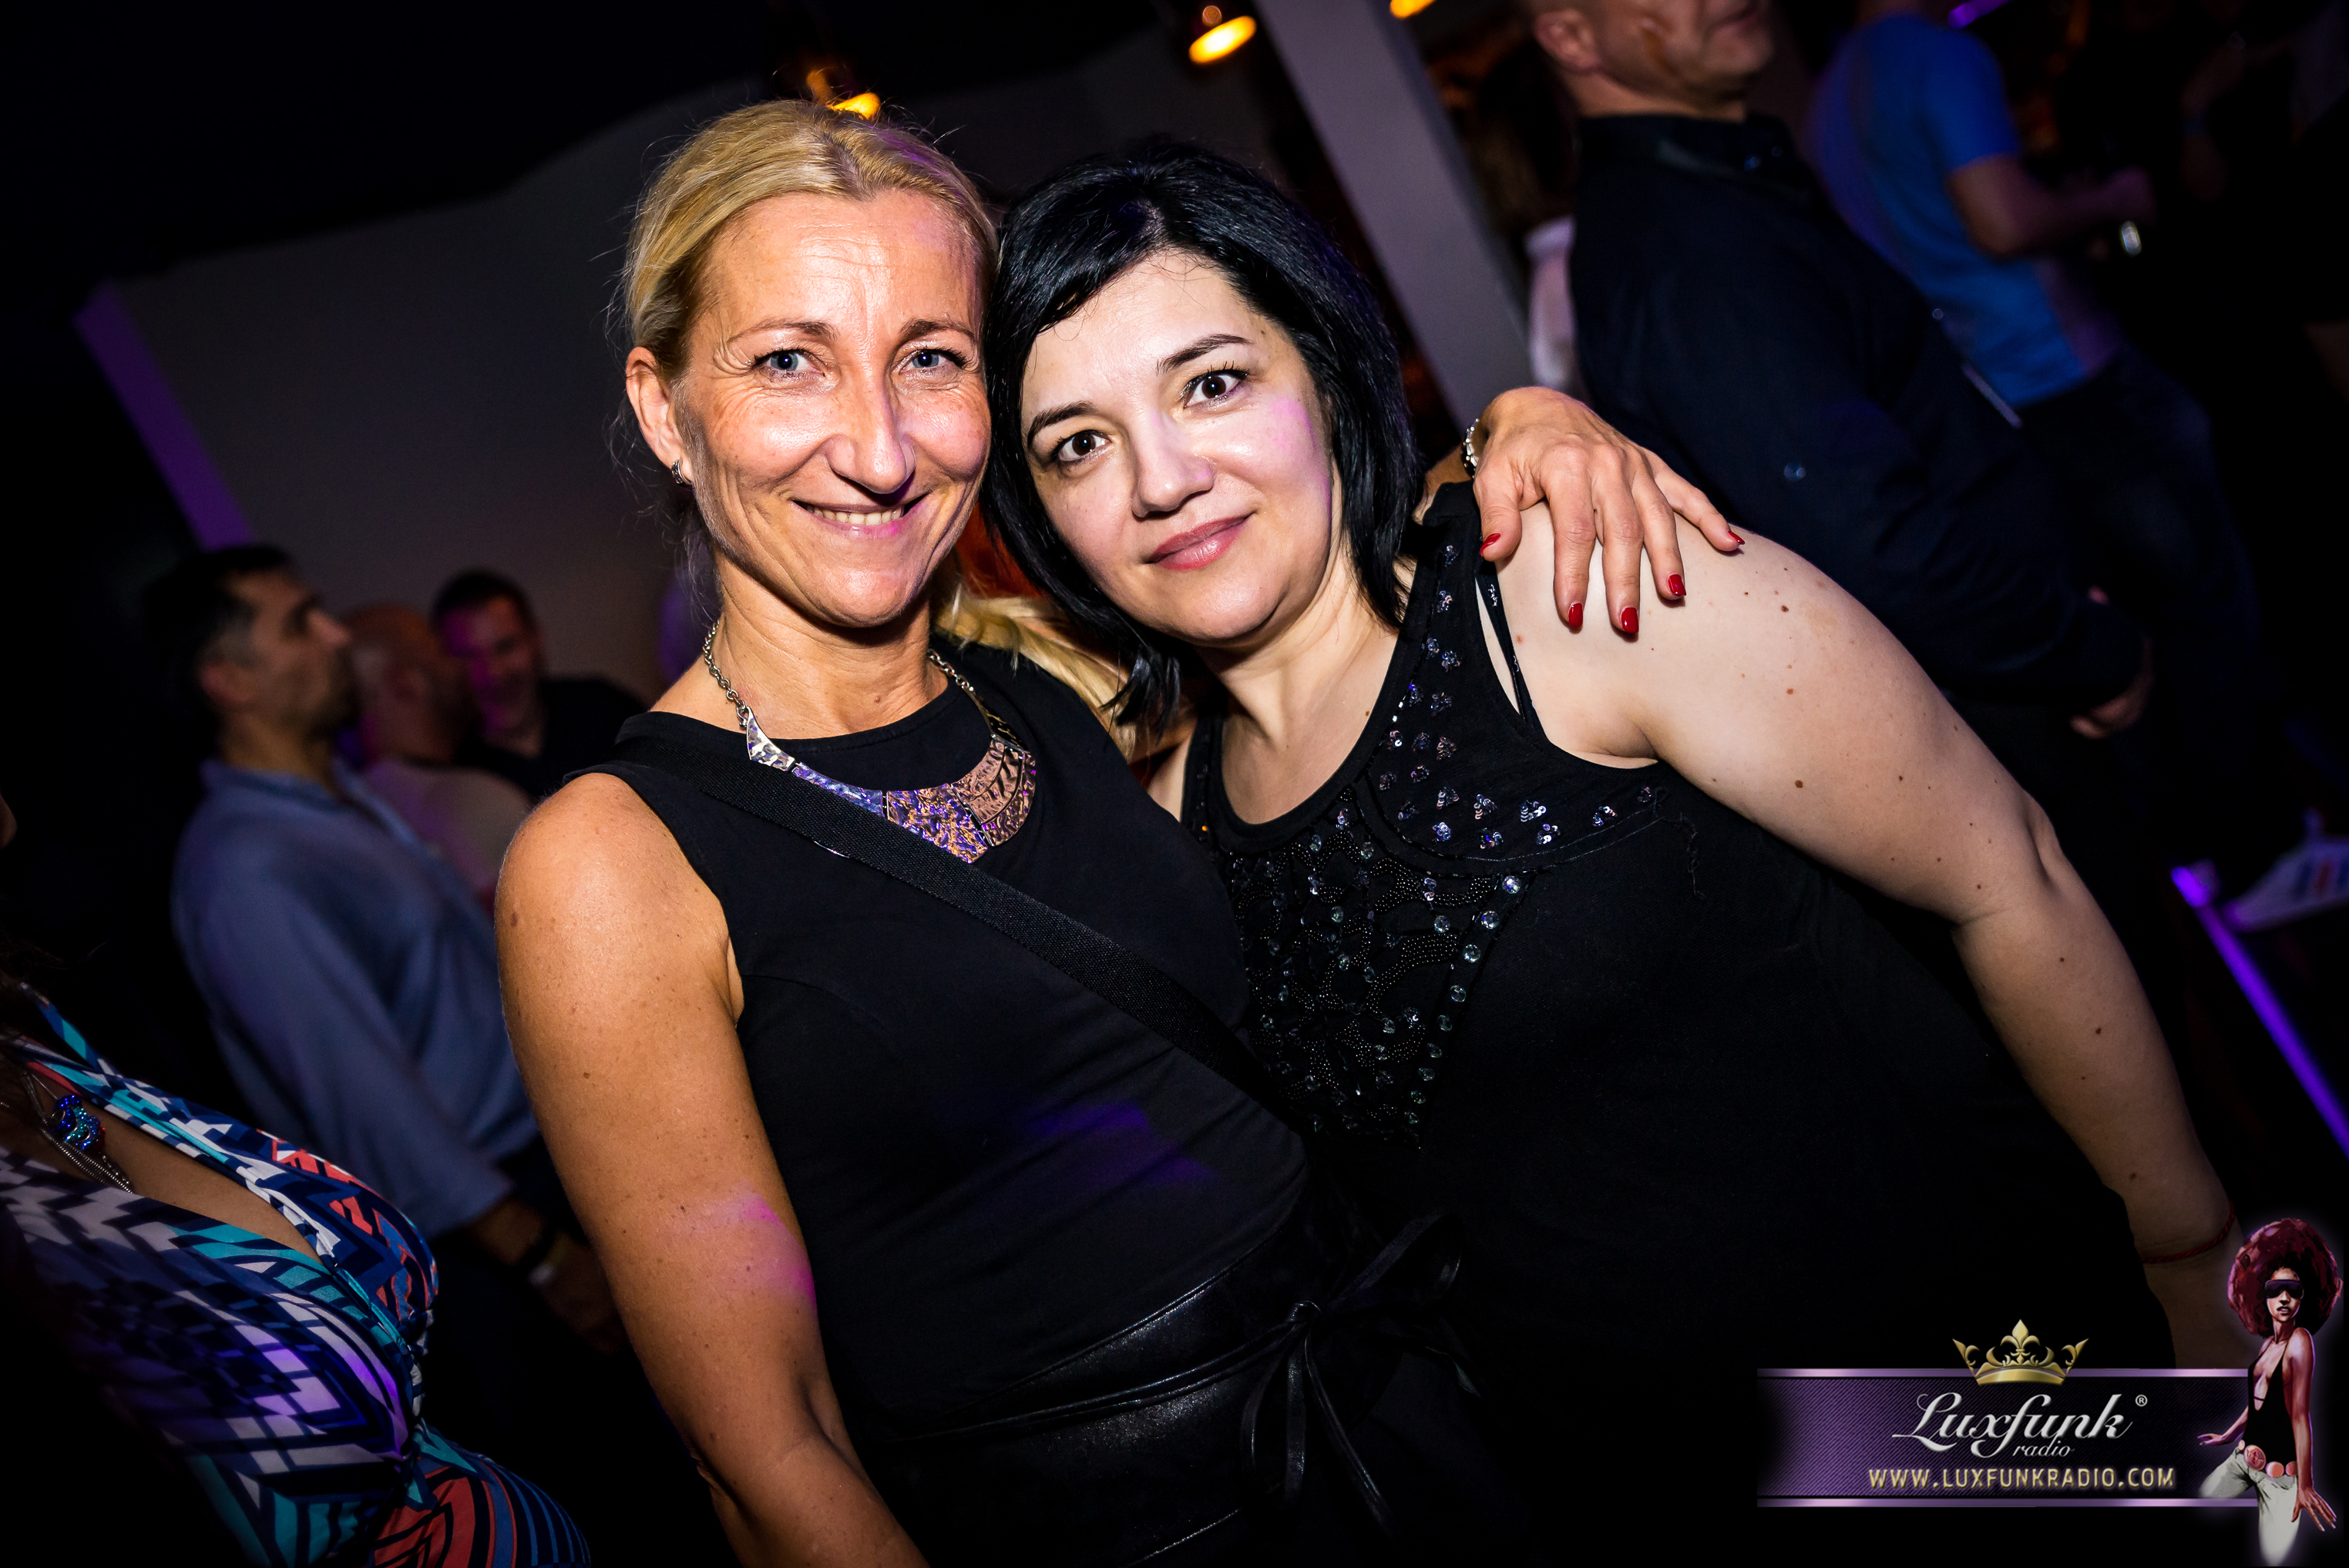 luxfunk-radio-funky-party-20191108-lock-budapest-1328